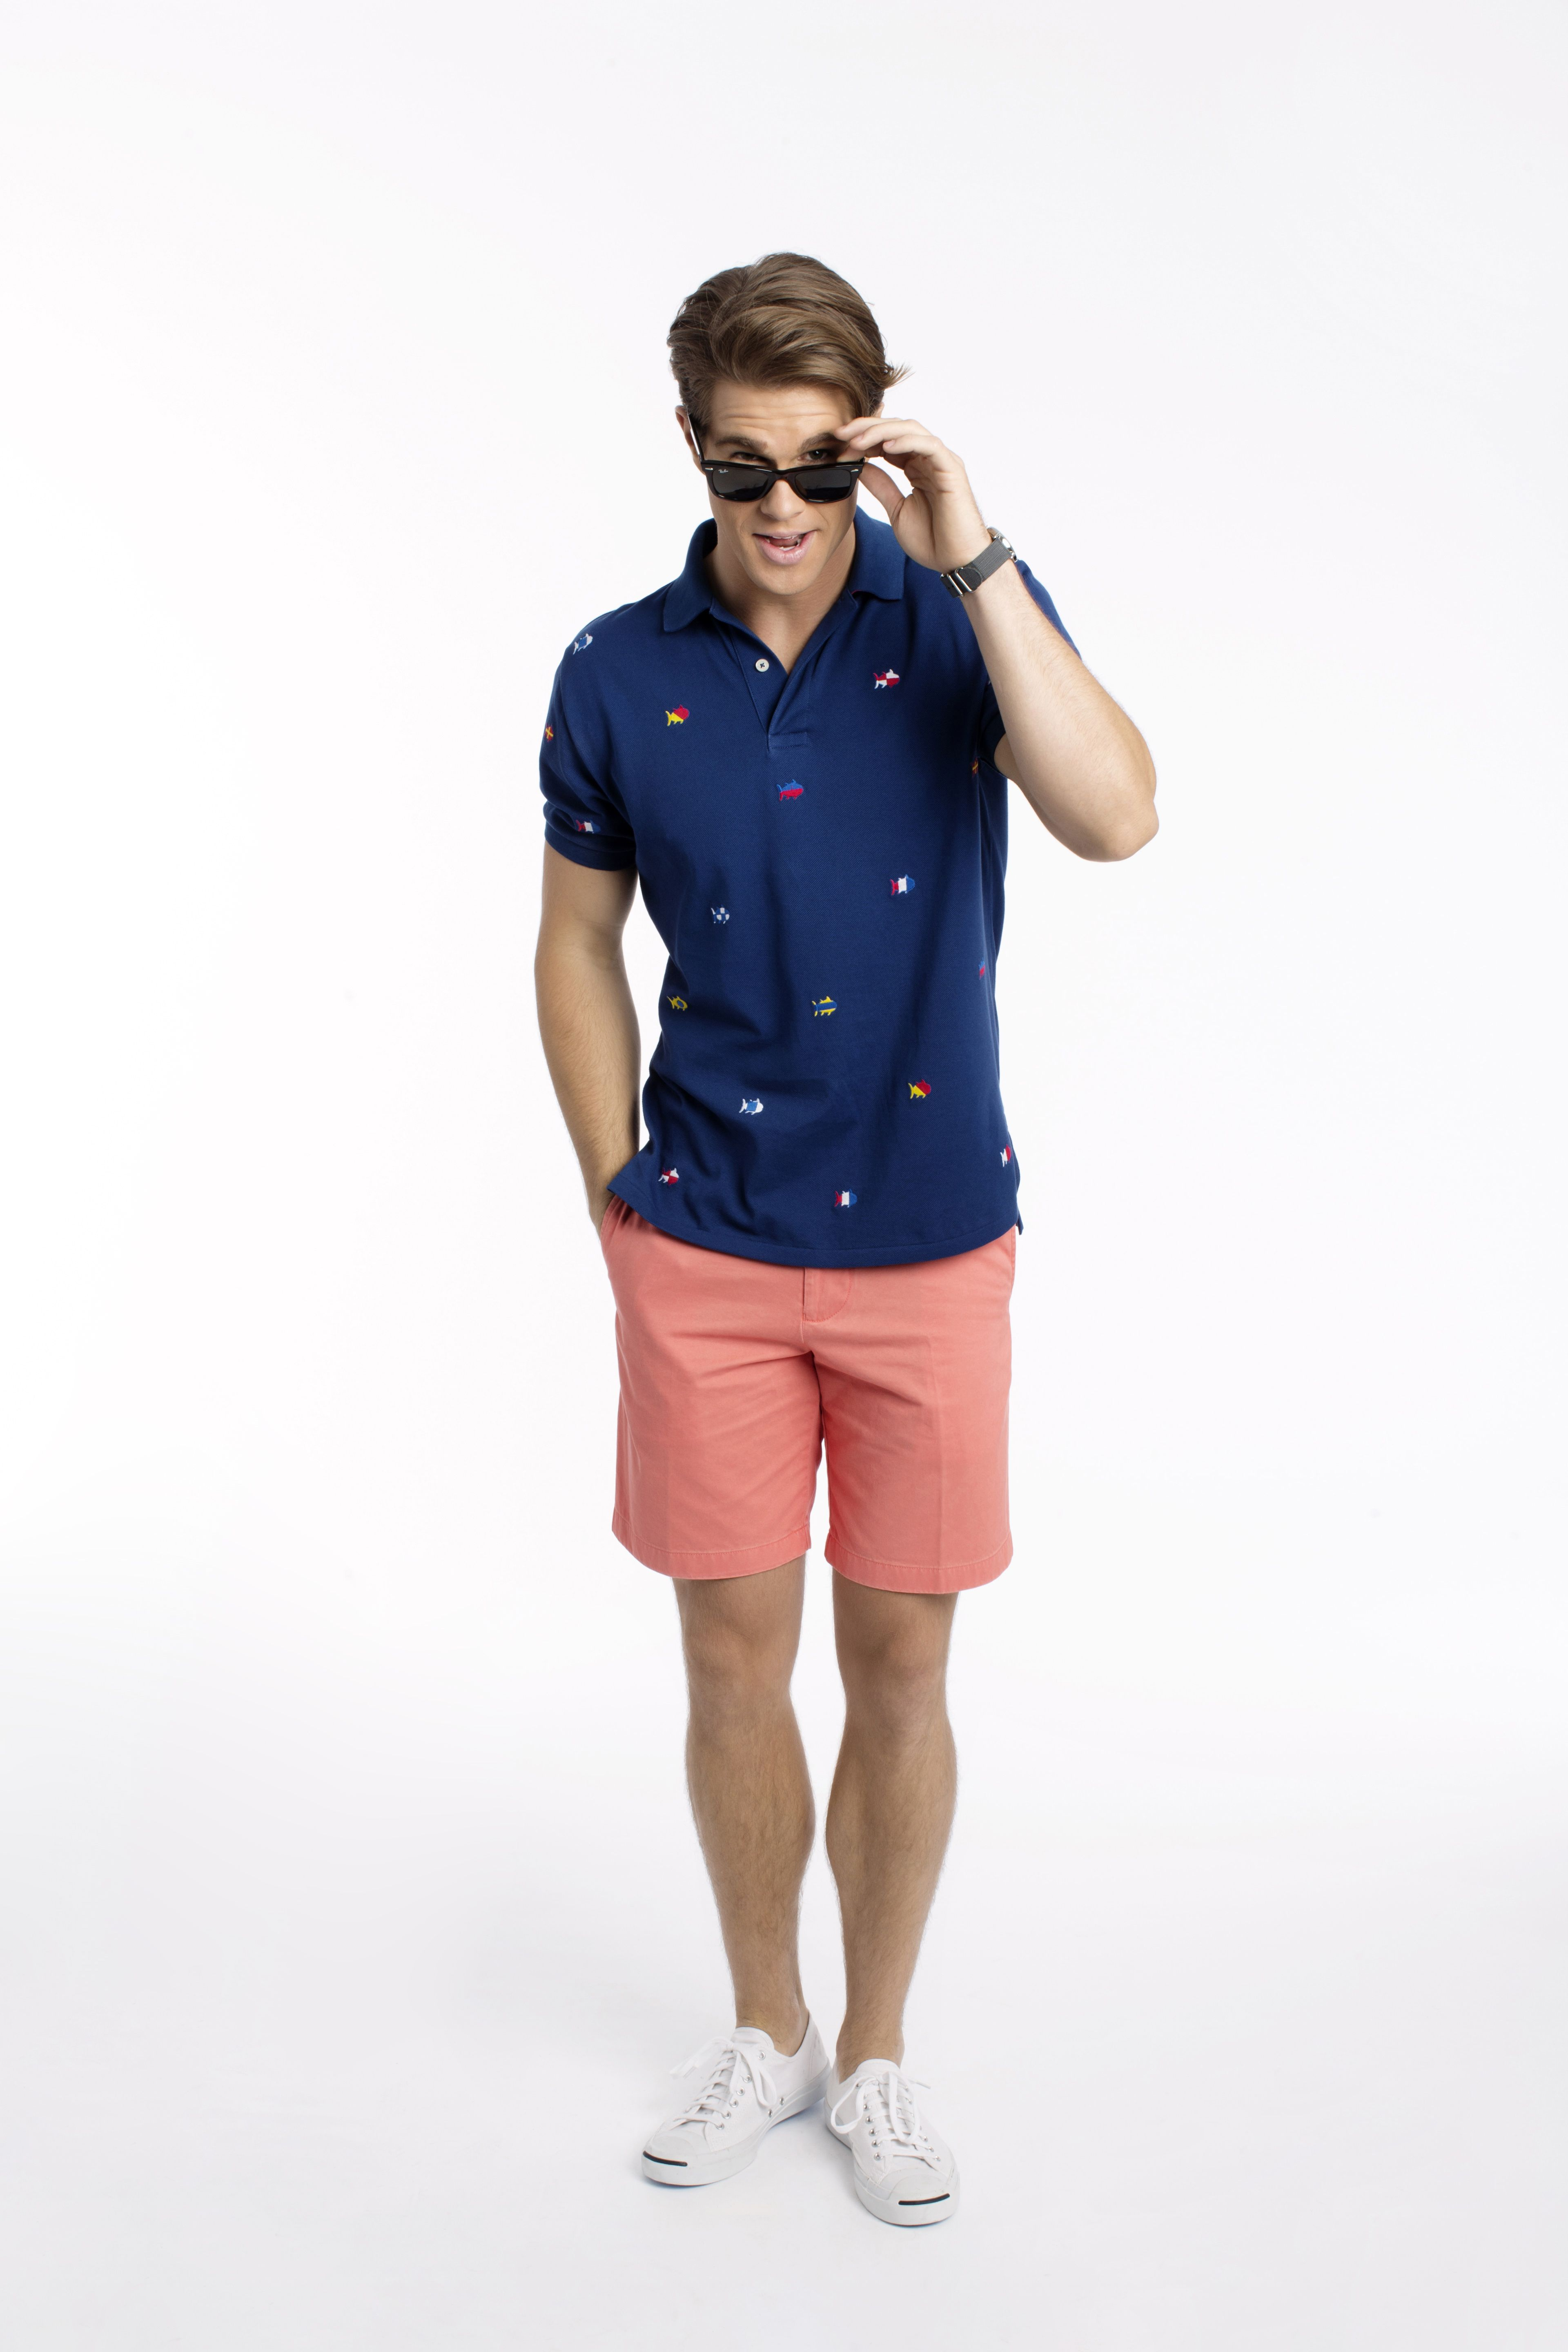 The Nautical Embroidered Skipjack Polo And The Skipjack Short In Fusion Coral Mens Shorts Outfits Polo Shirt Outfit Men Polo Shirt Outfits [ 5760 x 3840 Pixel ]